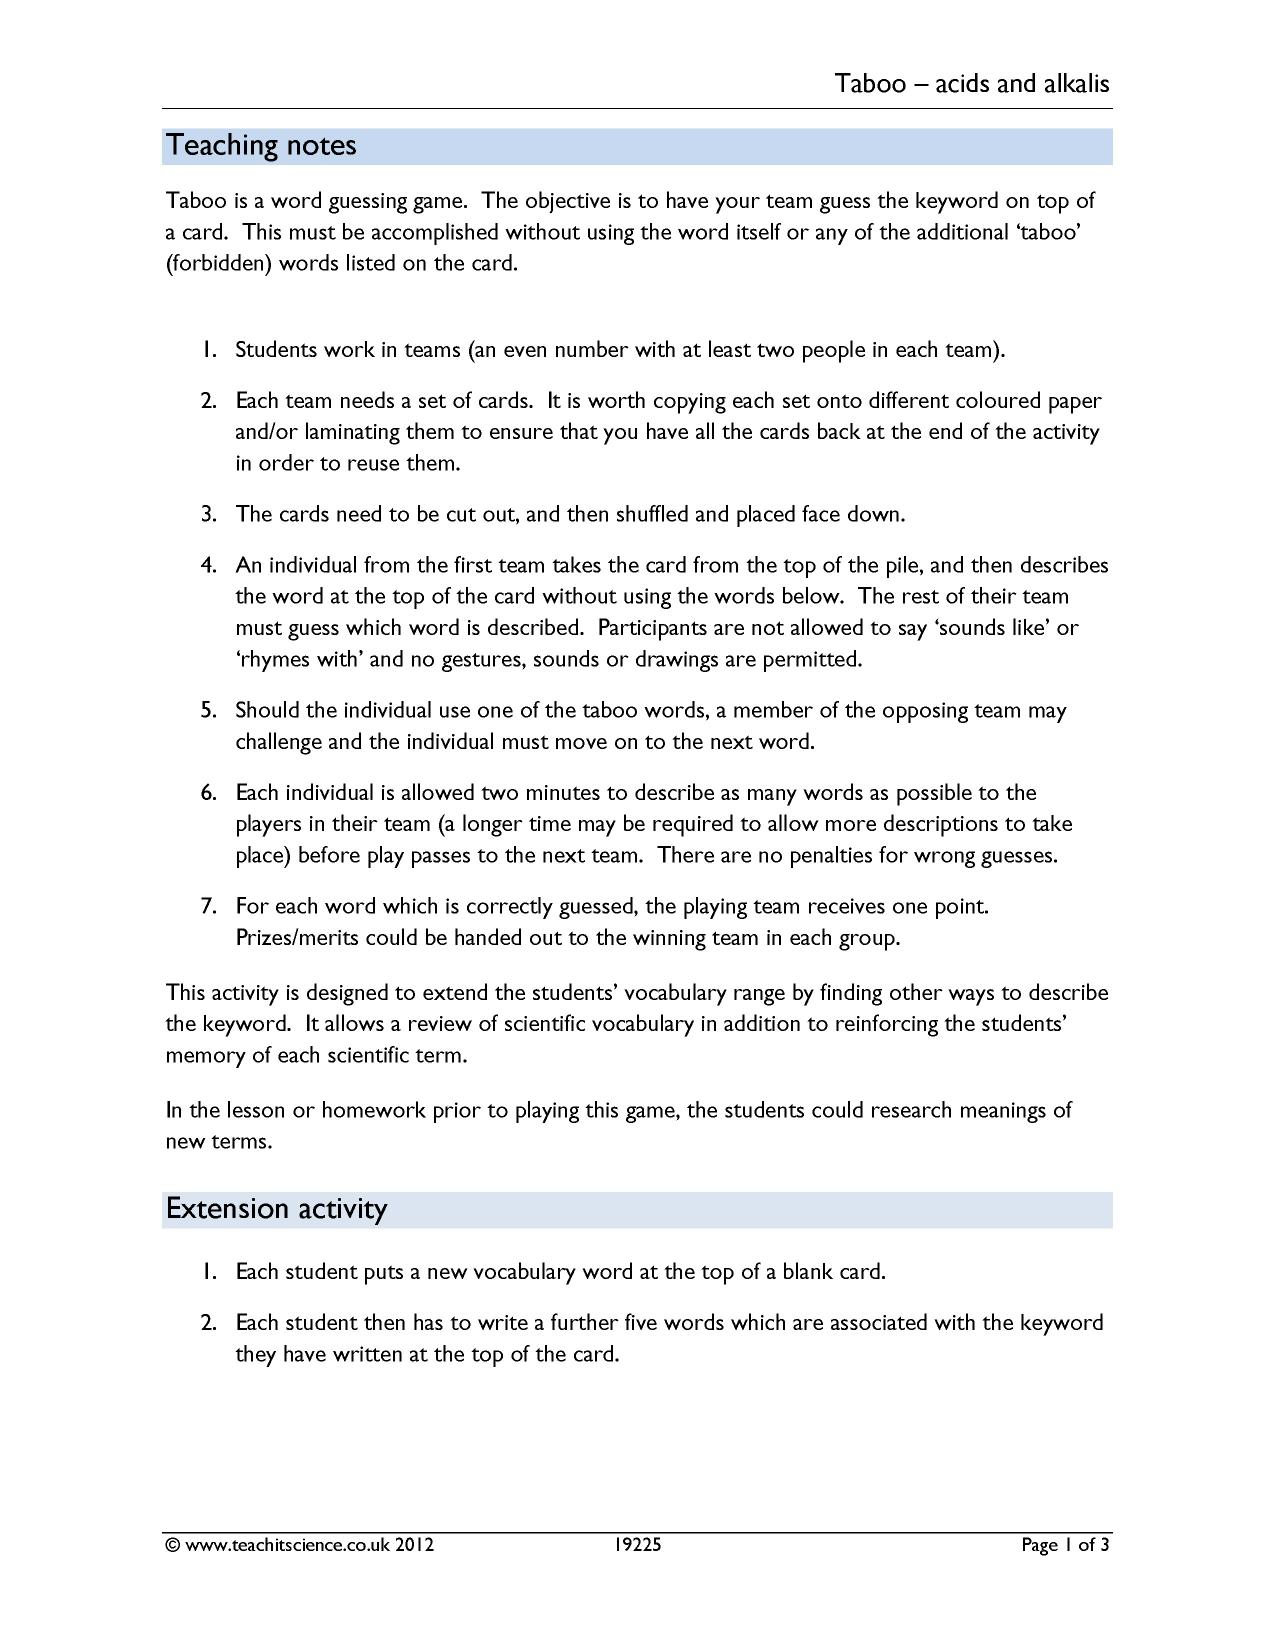 Worksheets Ecology Vocabulary Worksheet ks3 chemical reactions acids and alkalis teachit science 0 preview